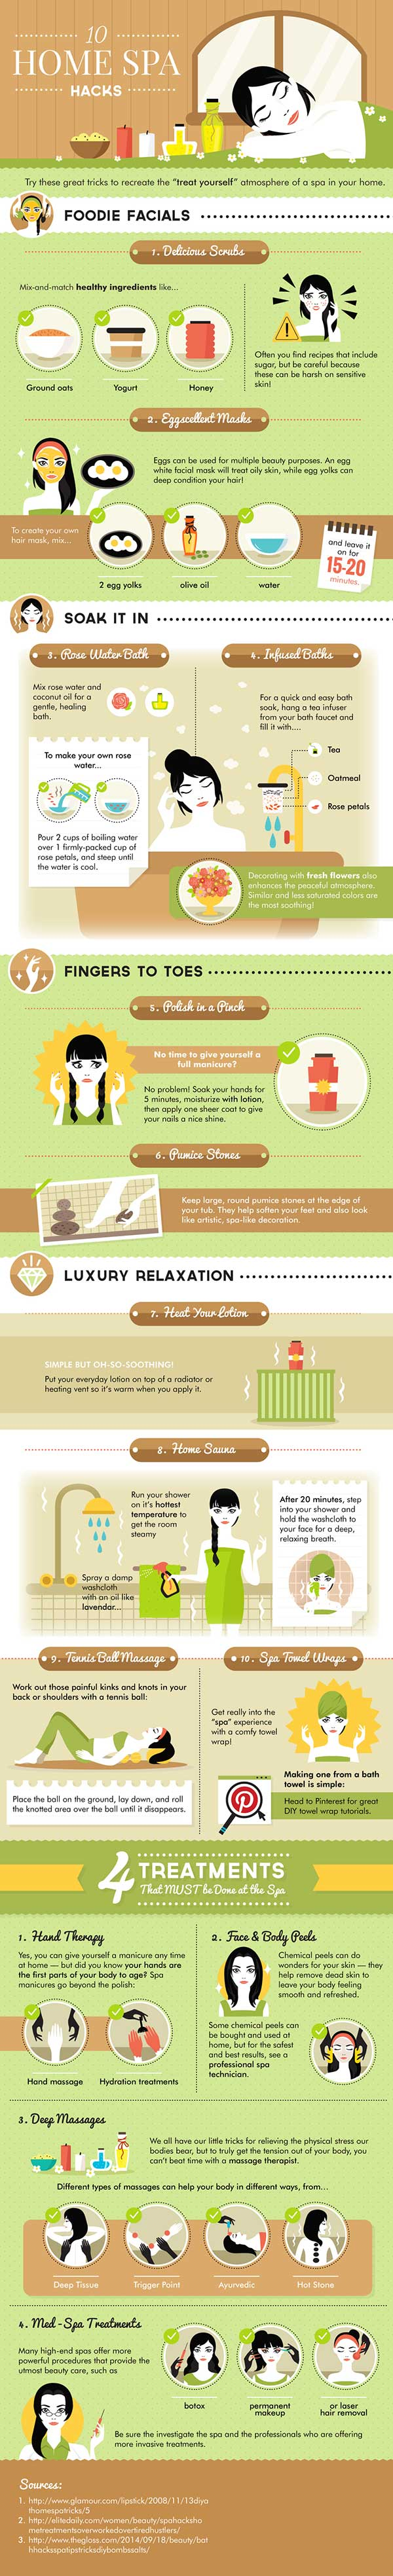 Home Spa Hacks